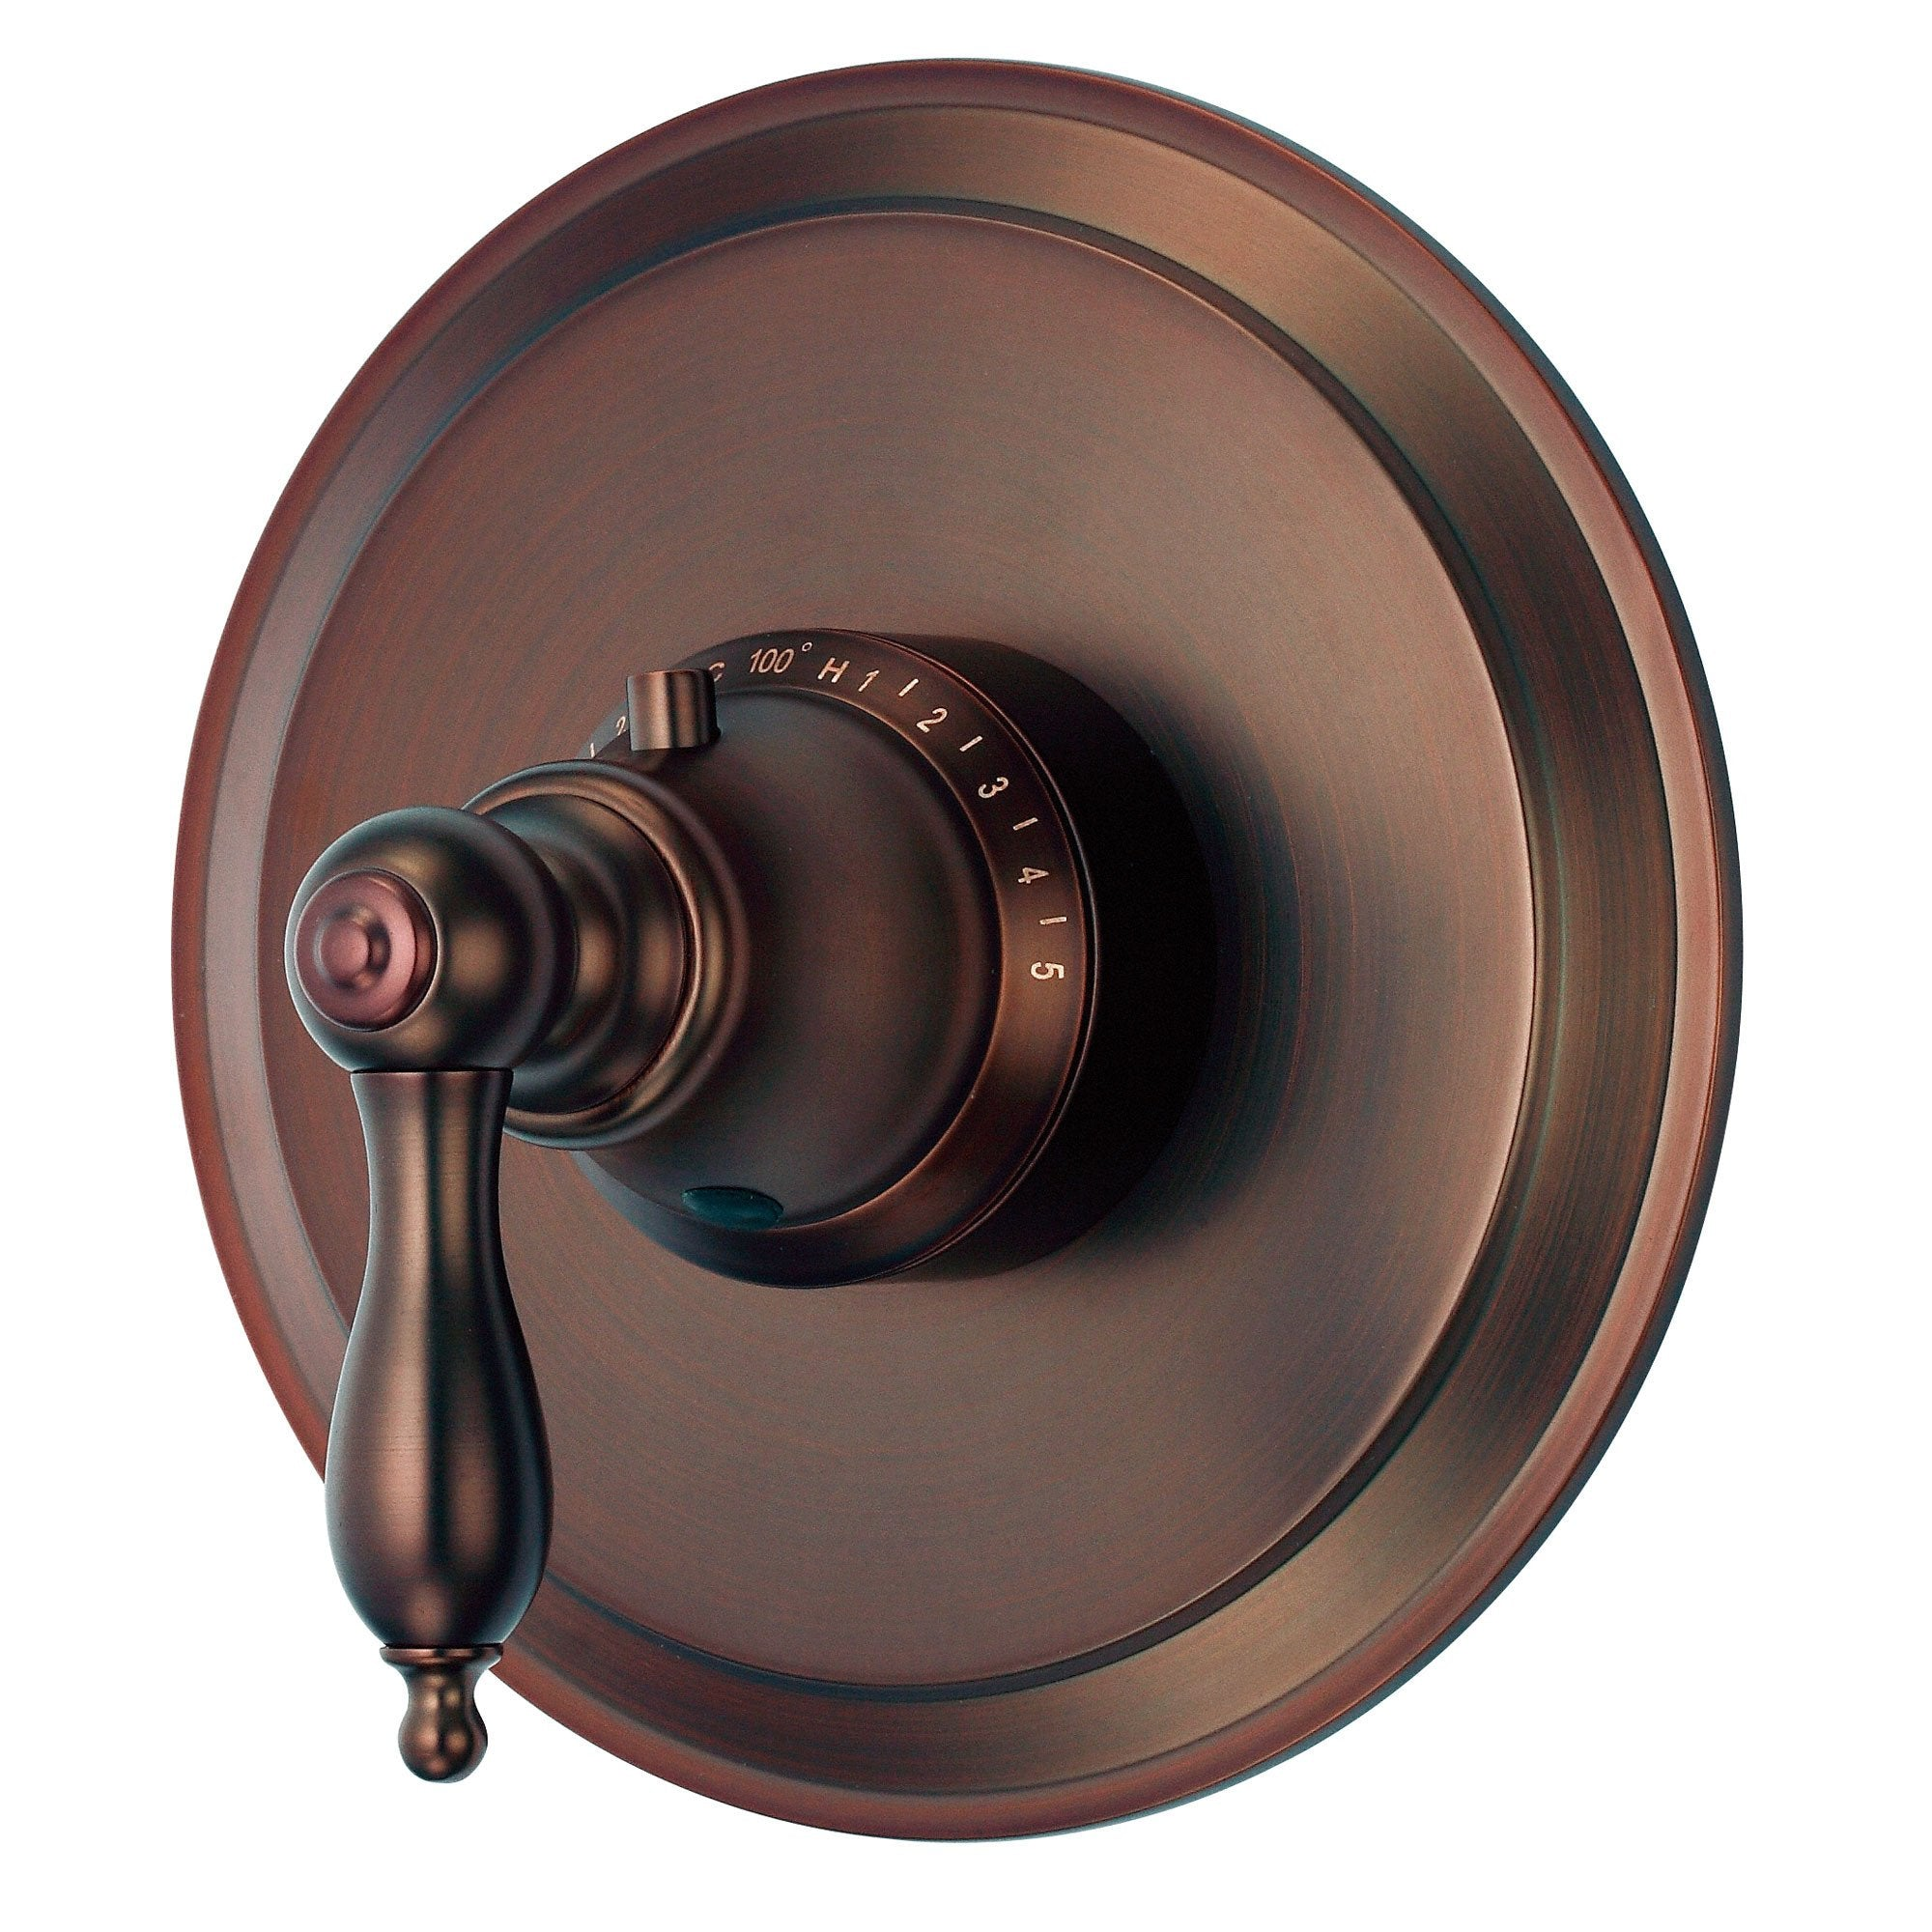 Danze Fairmont Oil Rubbed Bronze 1 Handle High-Volume Thermostatic Shower Control INCLUDES Rough-in Valve